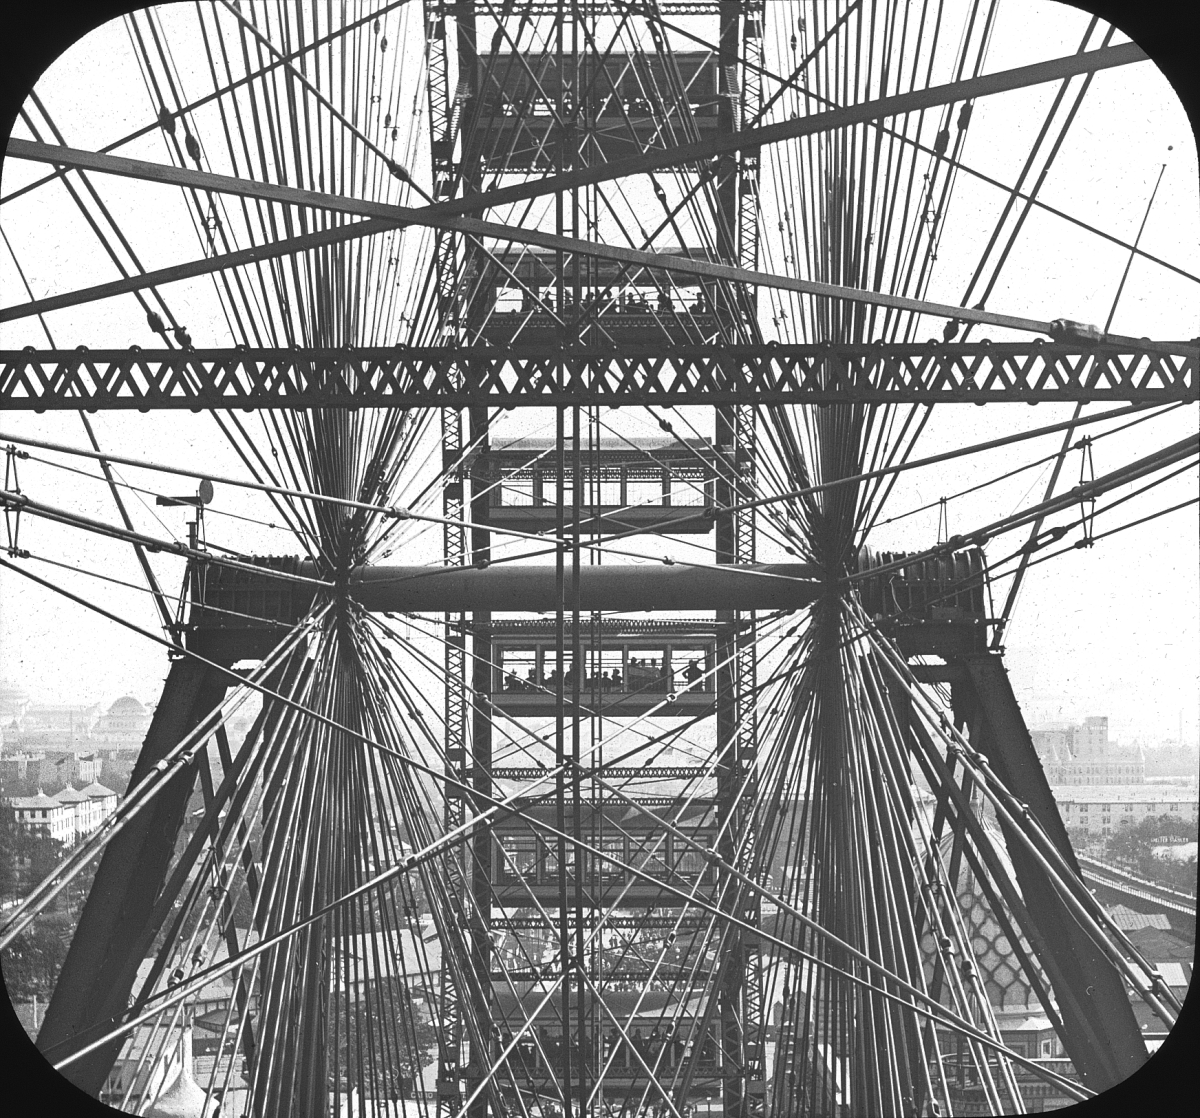 World's Columbian Exposition: Ferris Wheel, Chicago, 1893